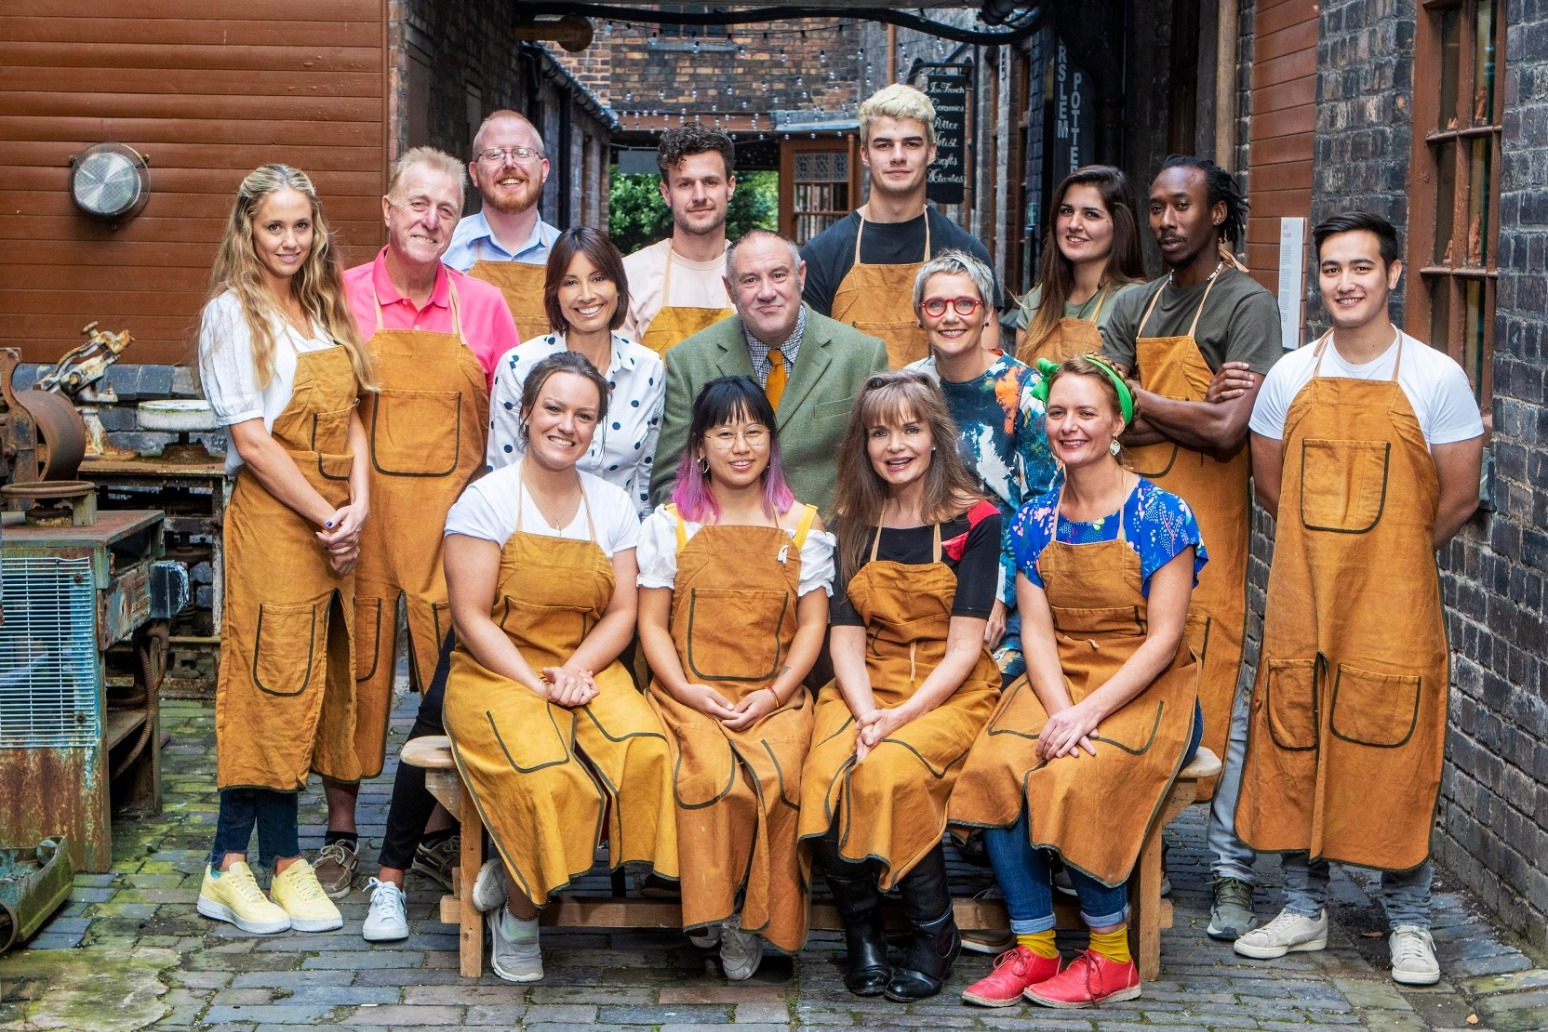 THE GREAT POTTERY THROW DOWN UNVEILS ITS 12 CONTESTANTS